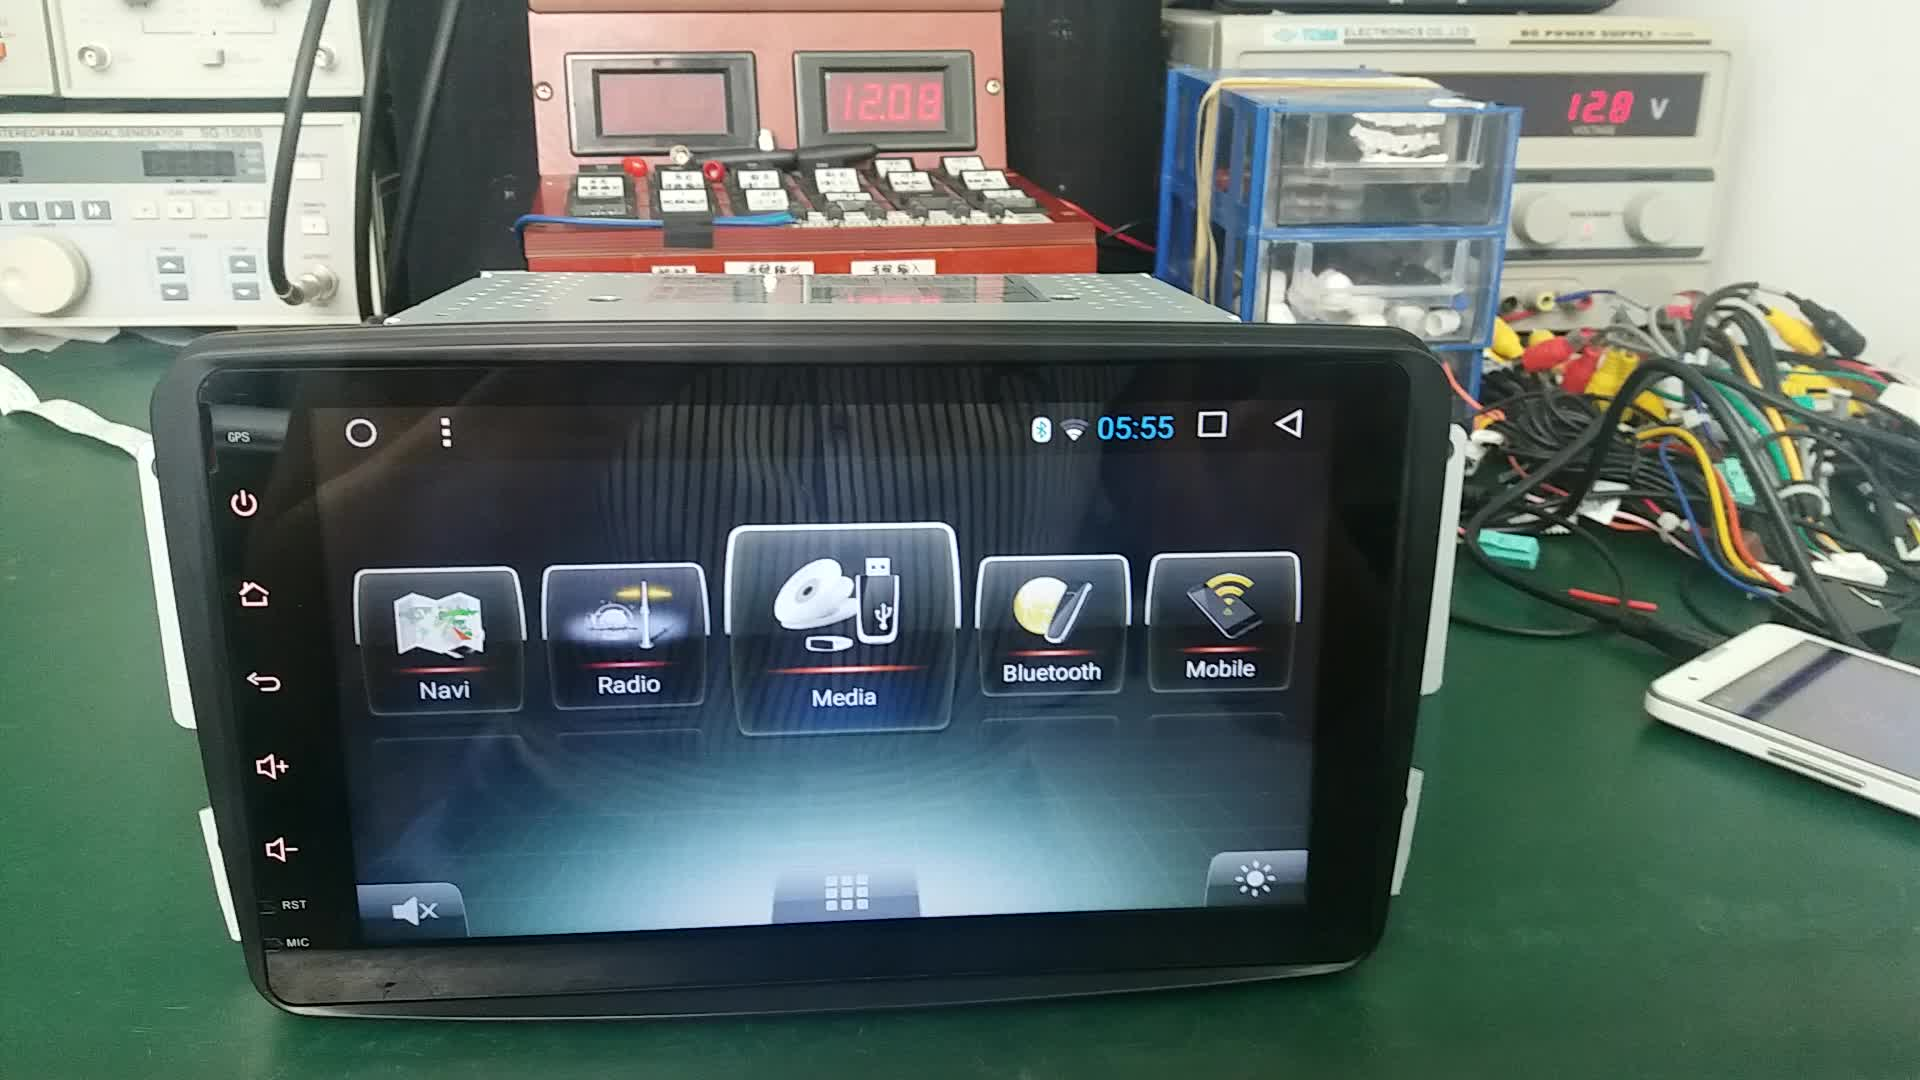 new product 8inch HD IPS LCD Android Car DVD Player 7.1 for Qashqai 2016 for x-trail rogue Parts